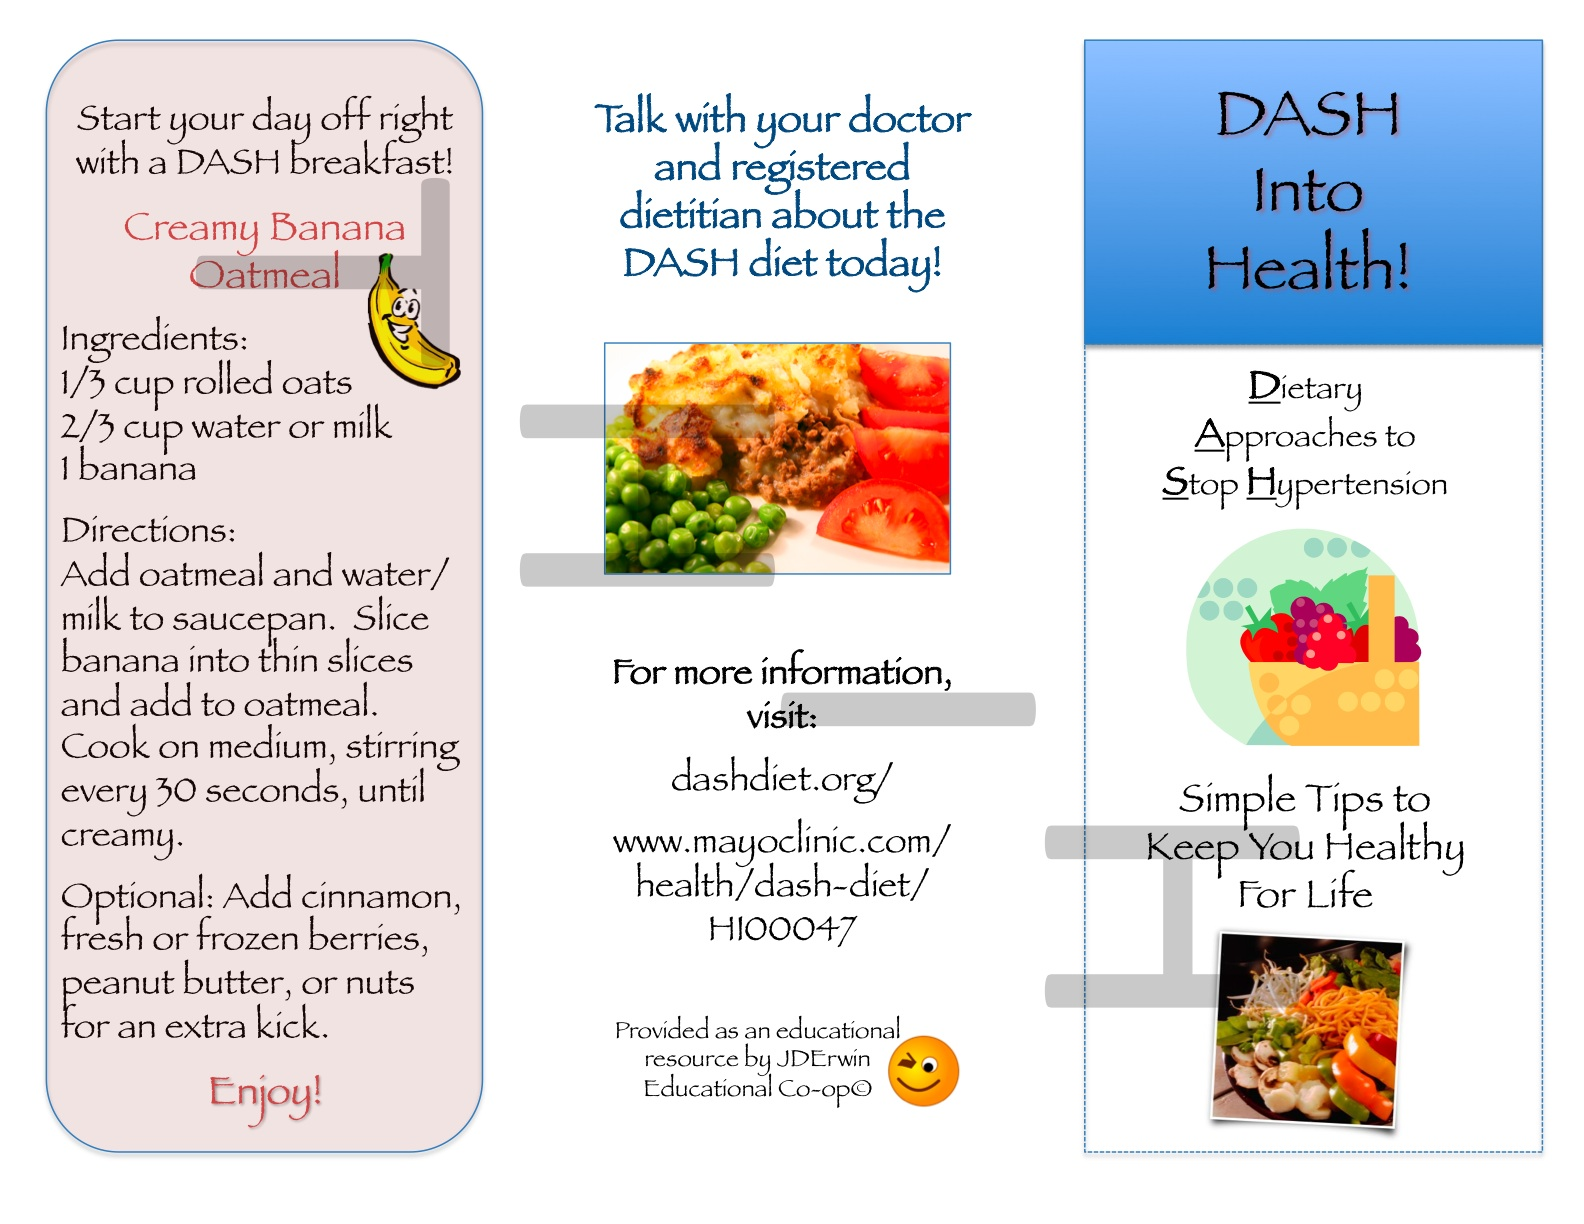 Dash Diet Brochure Nutr 360